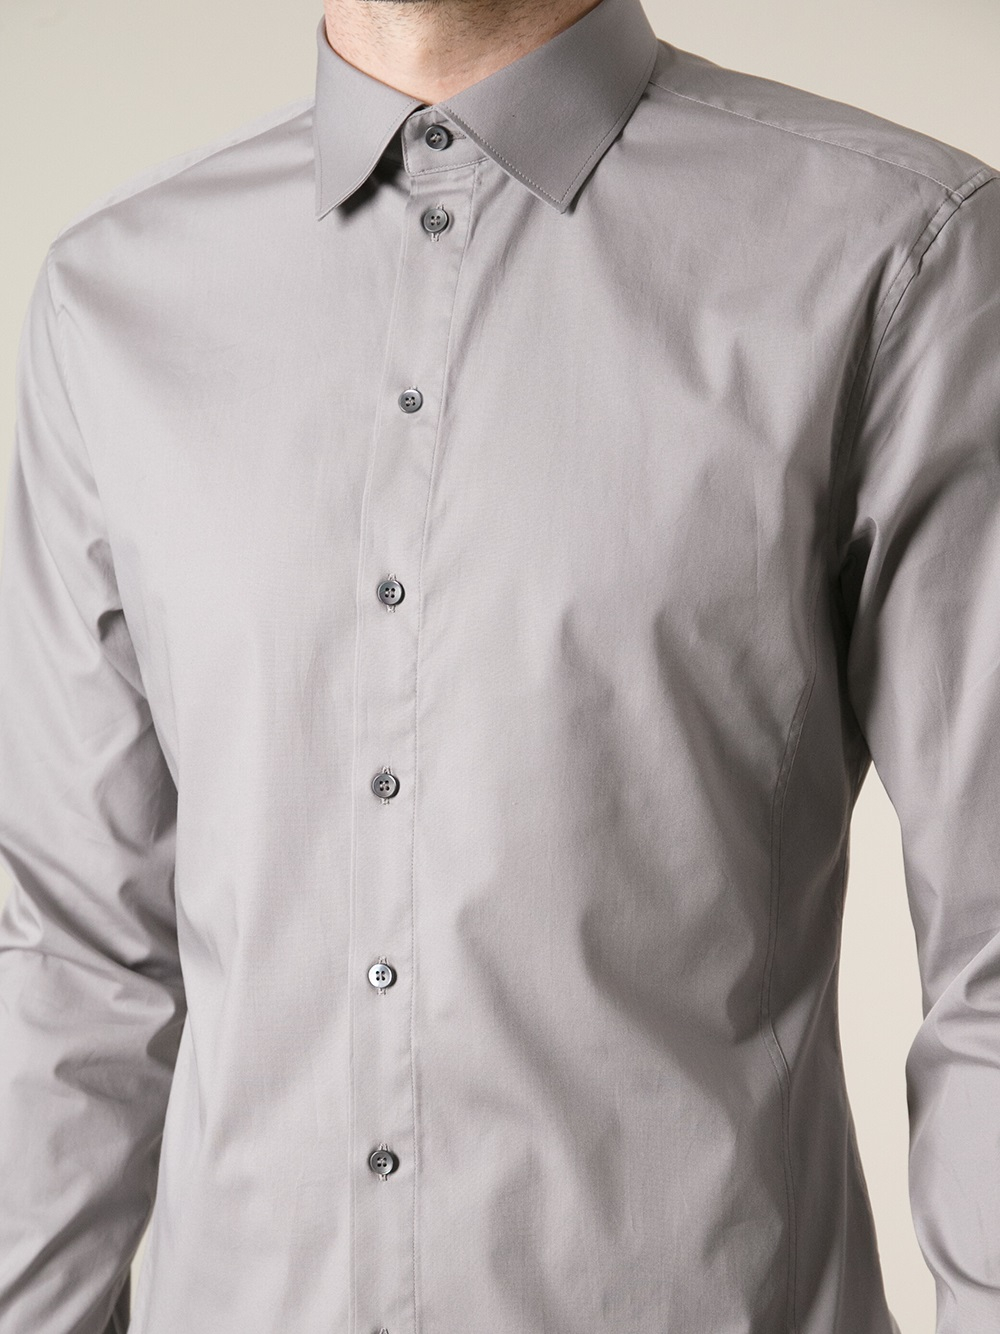 dolce gabbana button down shirt in gray for men lyst ForGrey Button Down Shirt